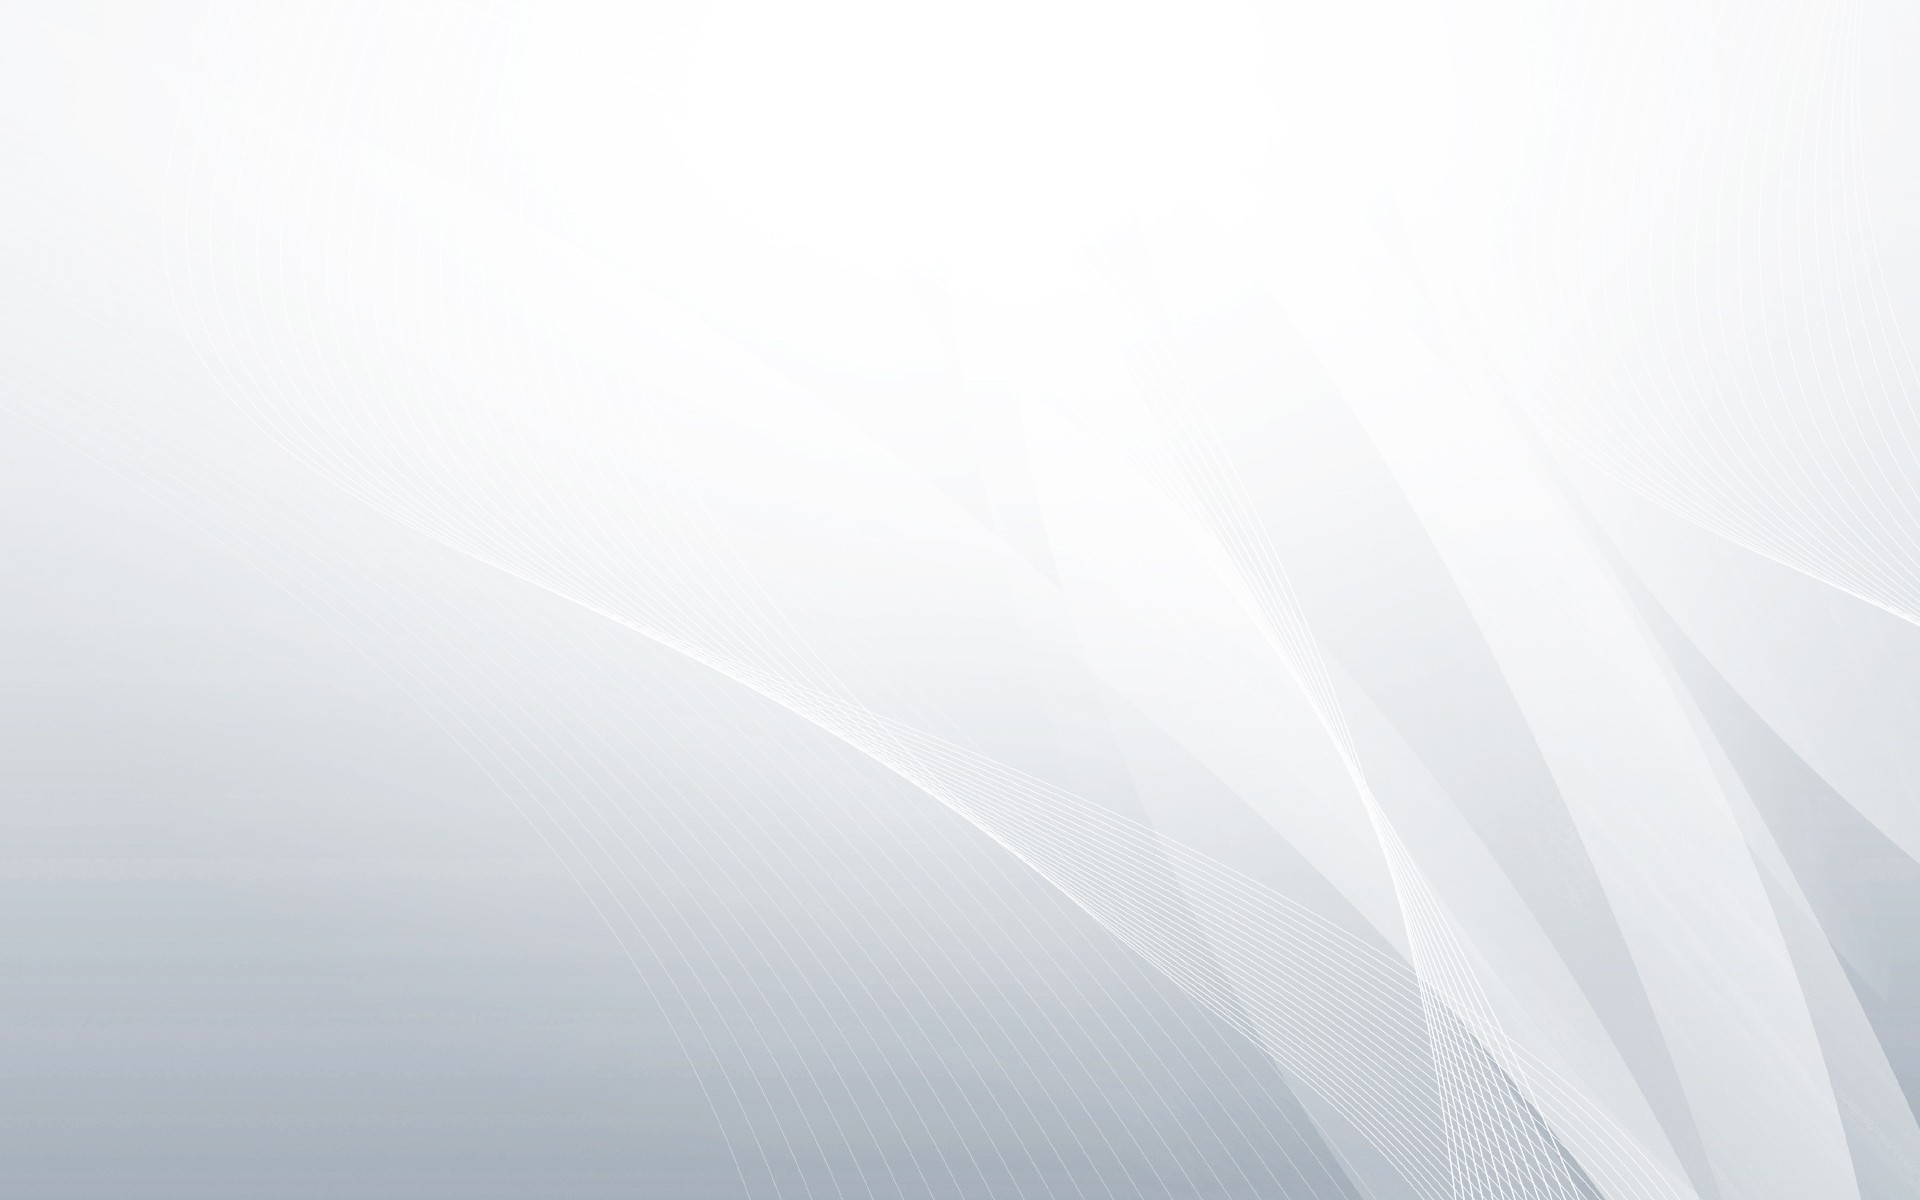 light-grey-abstract-background-hd-pictures-wallpapers-amagico-grey- background-wallpaper -bedroom-for-walls-homebase-designs-living-room-uk-next-border